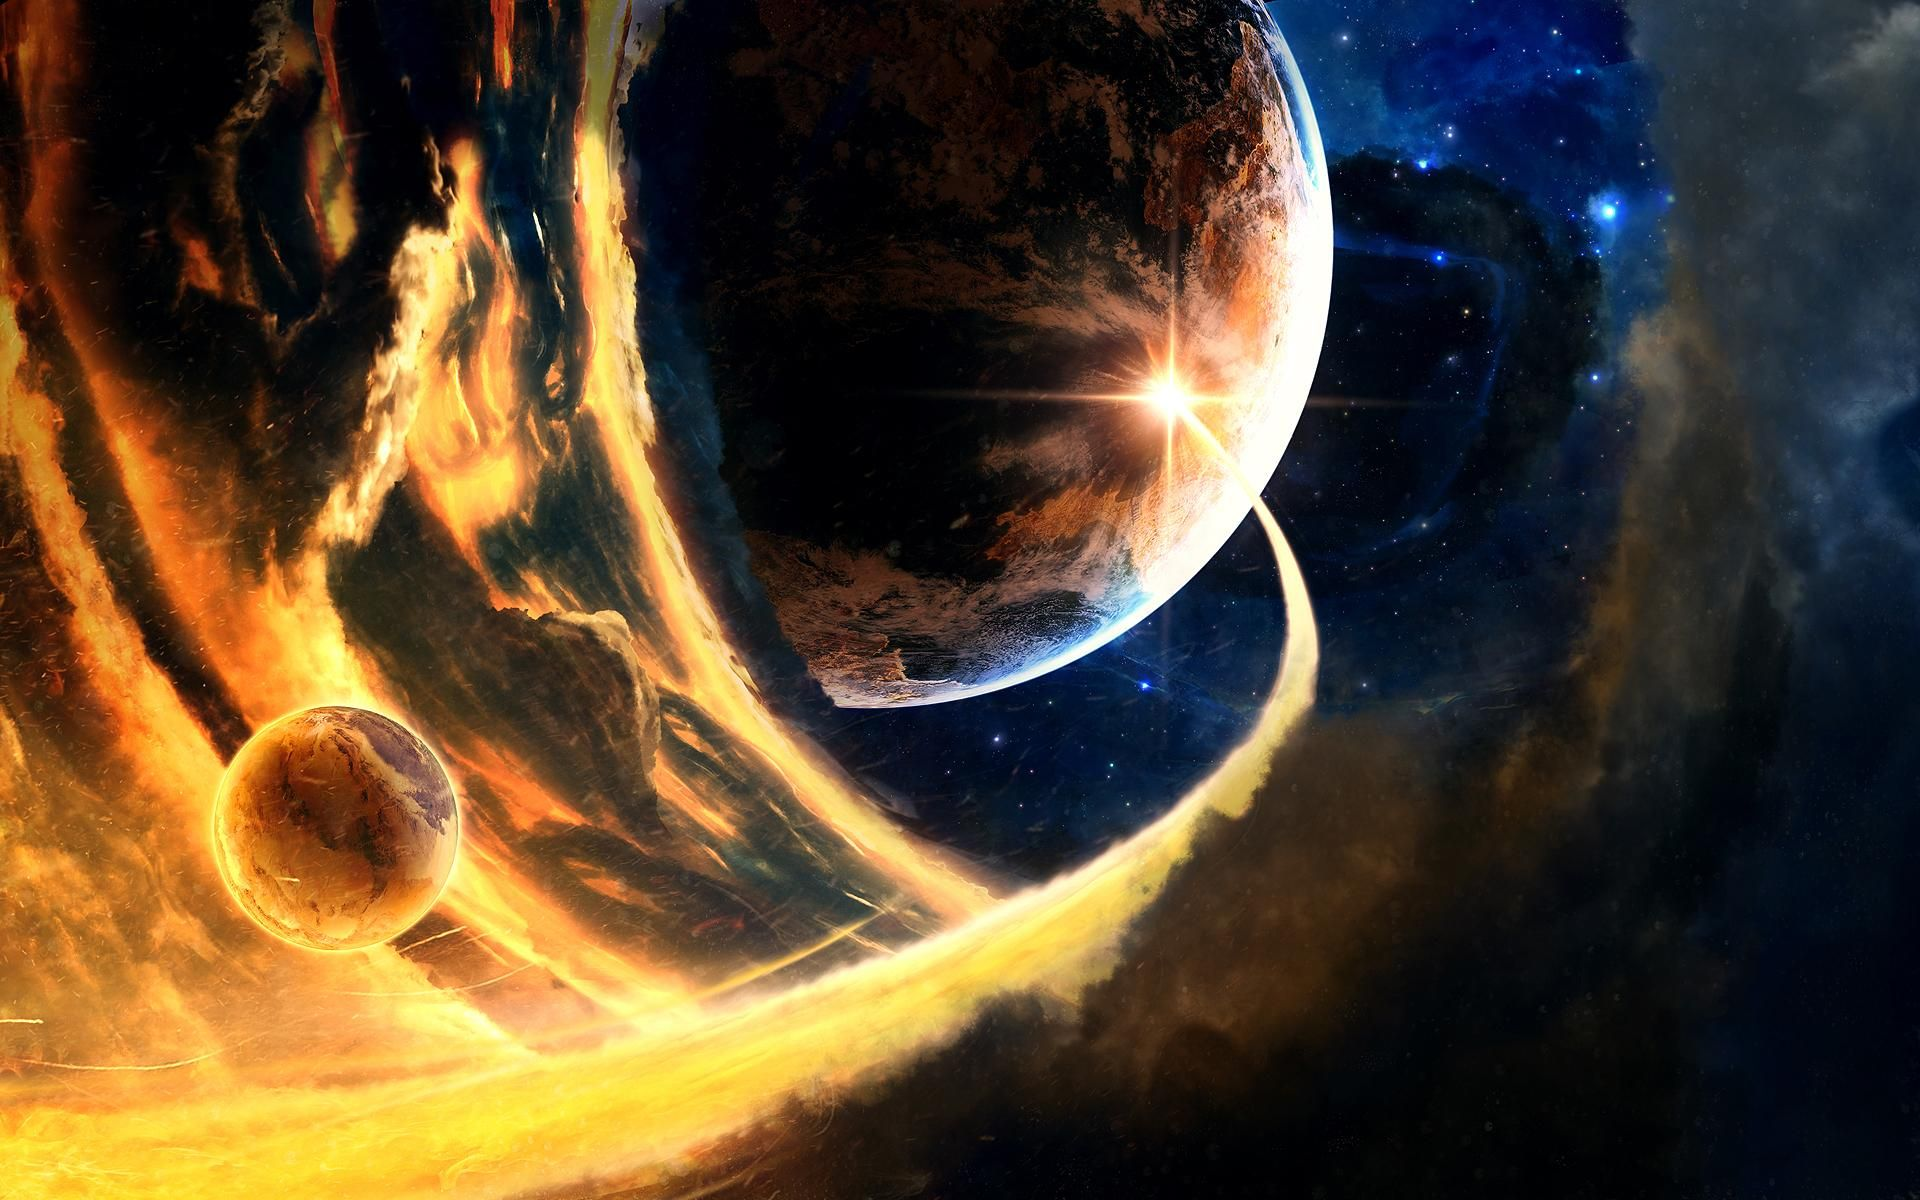 Planets Conflict Wide Jpg 1920 1200 Planets Wallpaper Planets Space Art